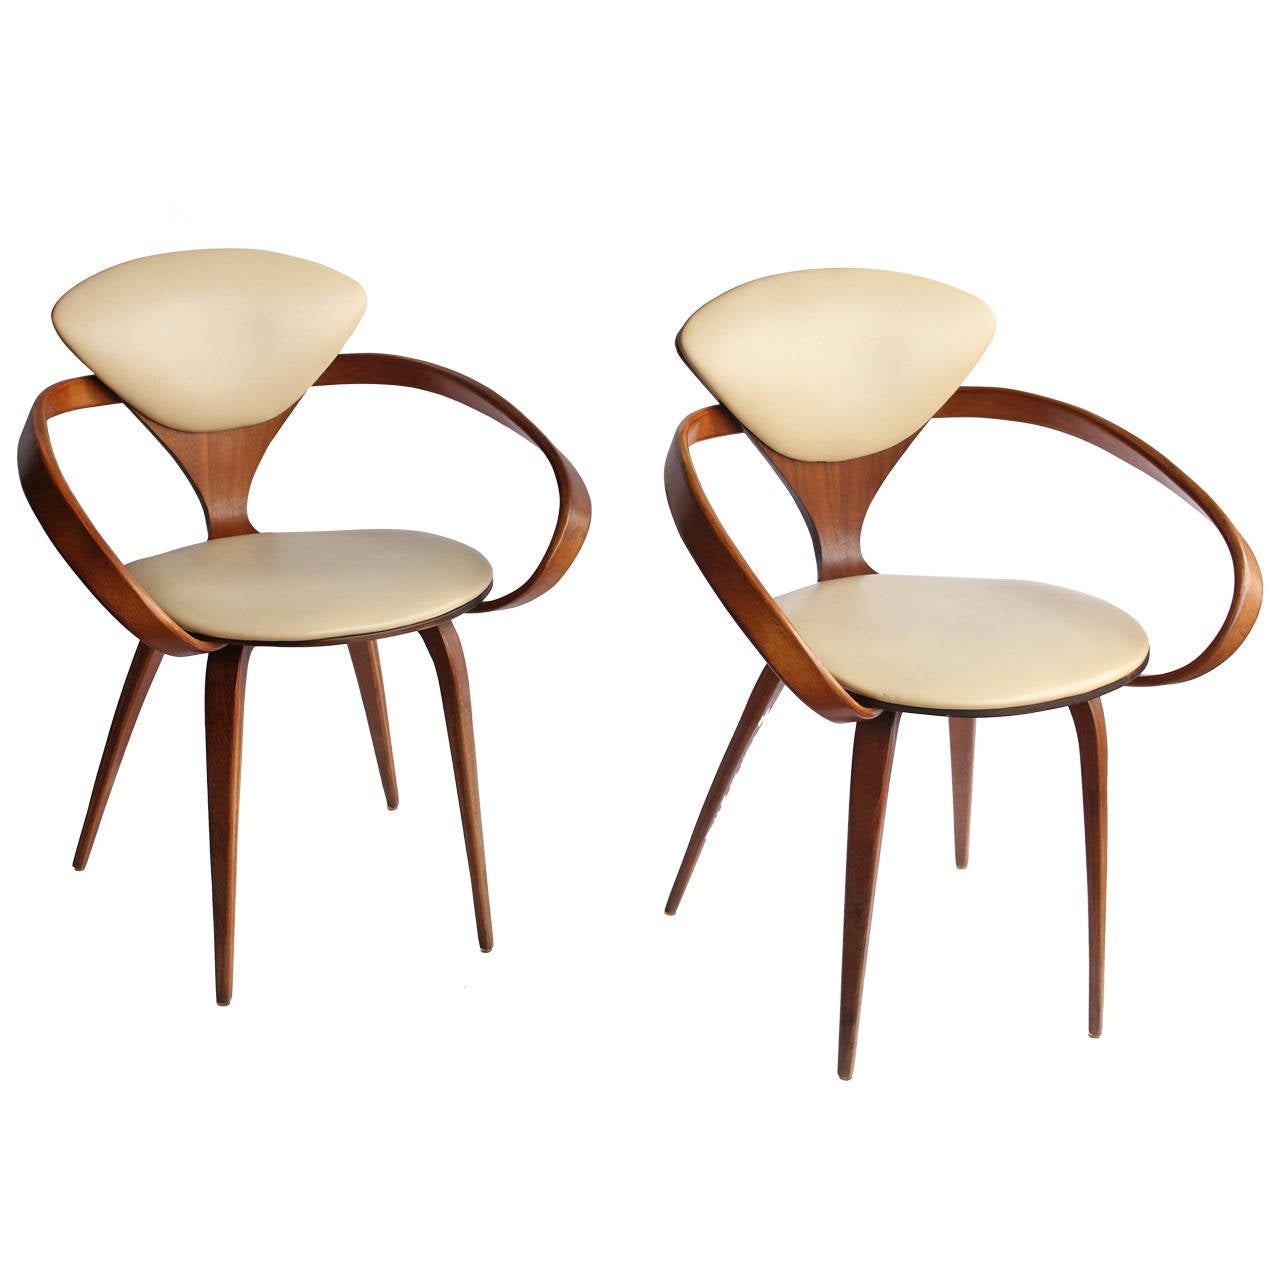 1950s pretzel chairs by norman cherner 1